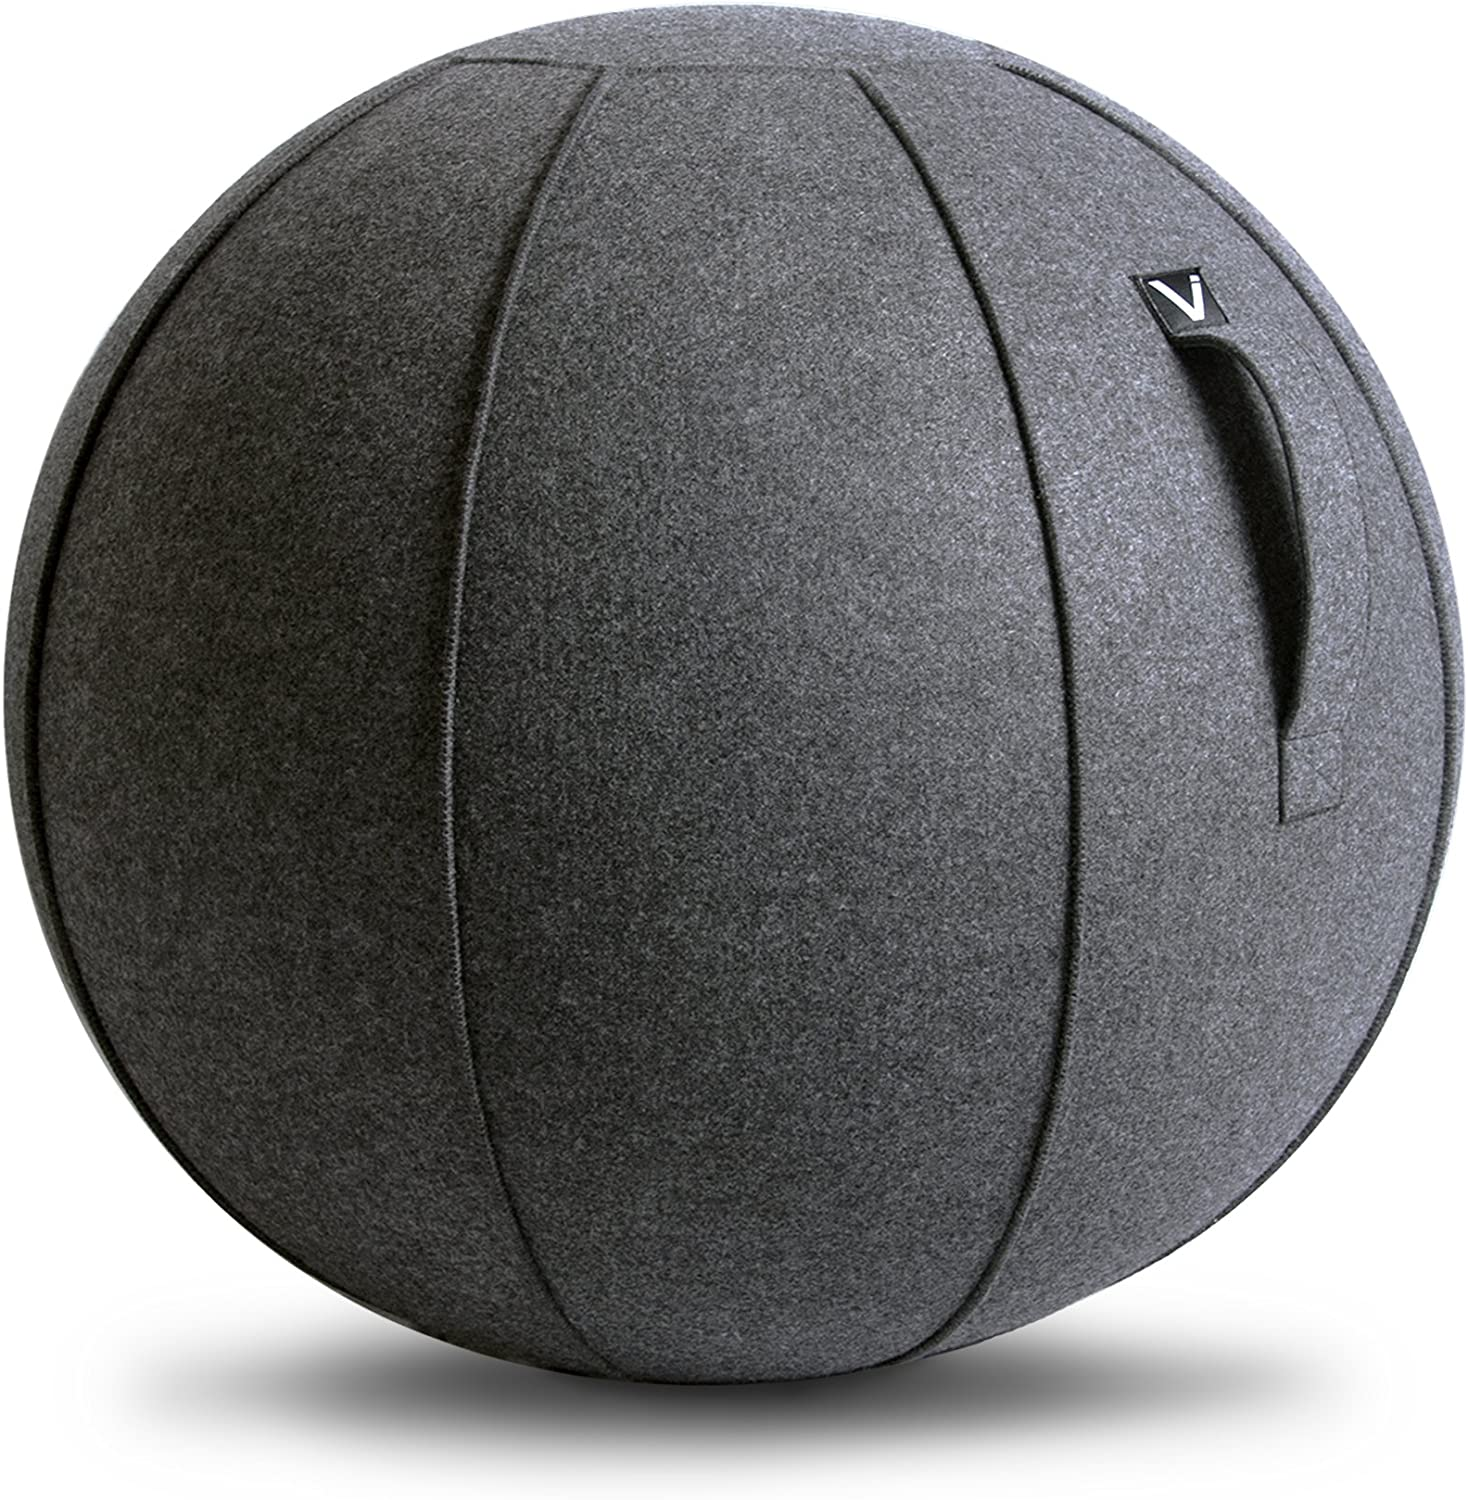 Vivora Luno - Sitting Ball Chair for Office and Home, Lightweight Self-Standing Ergonomic Posture Activating Exercise Ball Solution with Handle & Cover, Classroom & Yoga